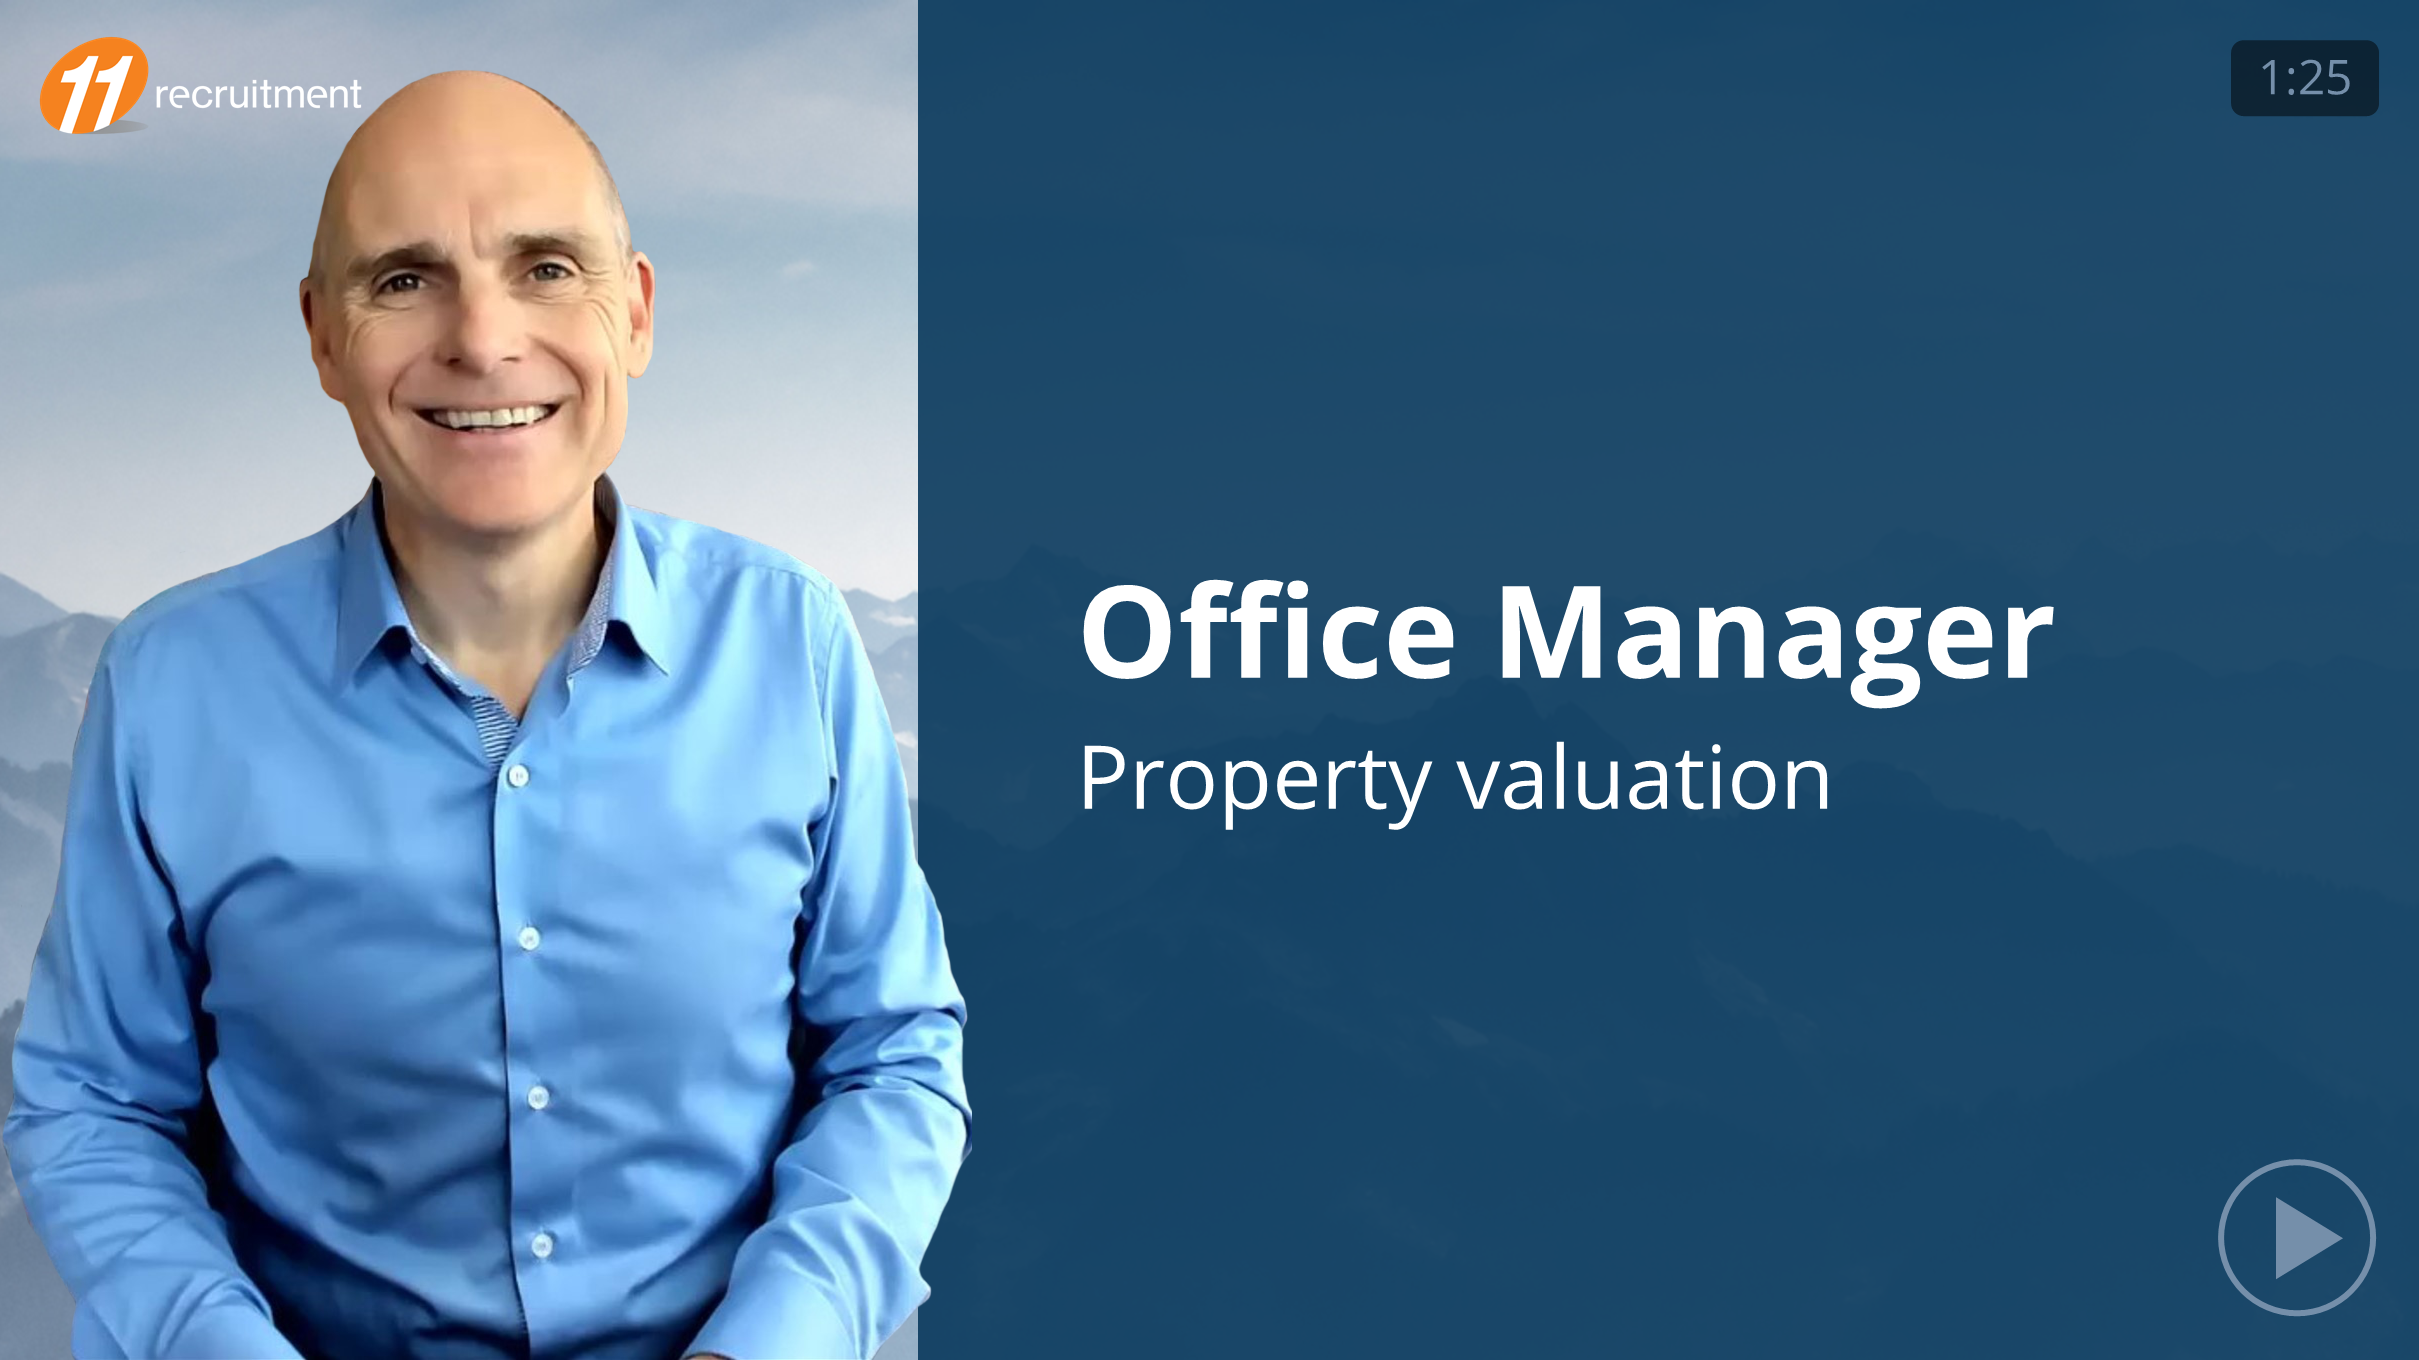 Office Manager - Property